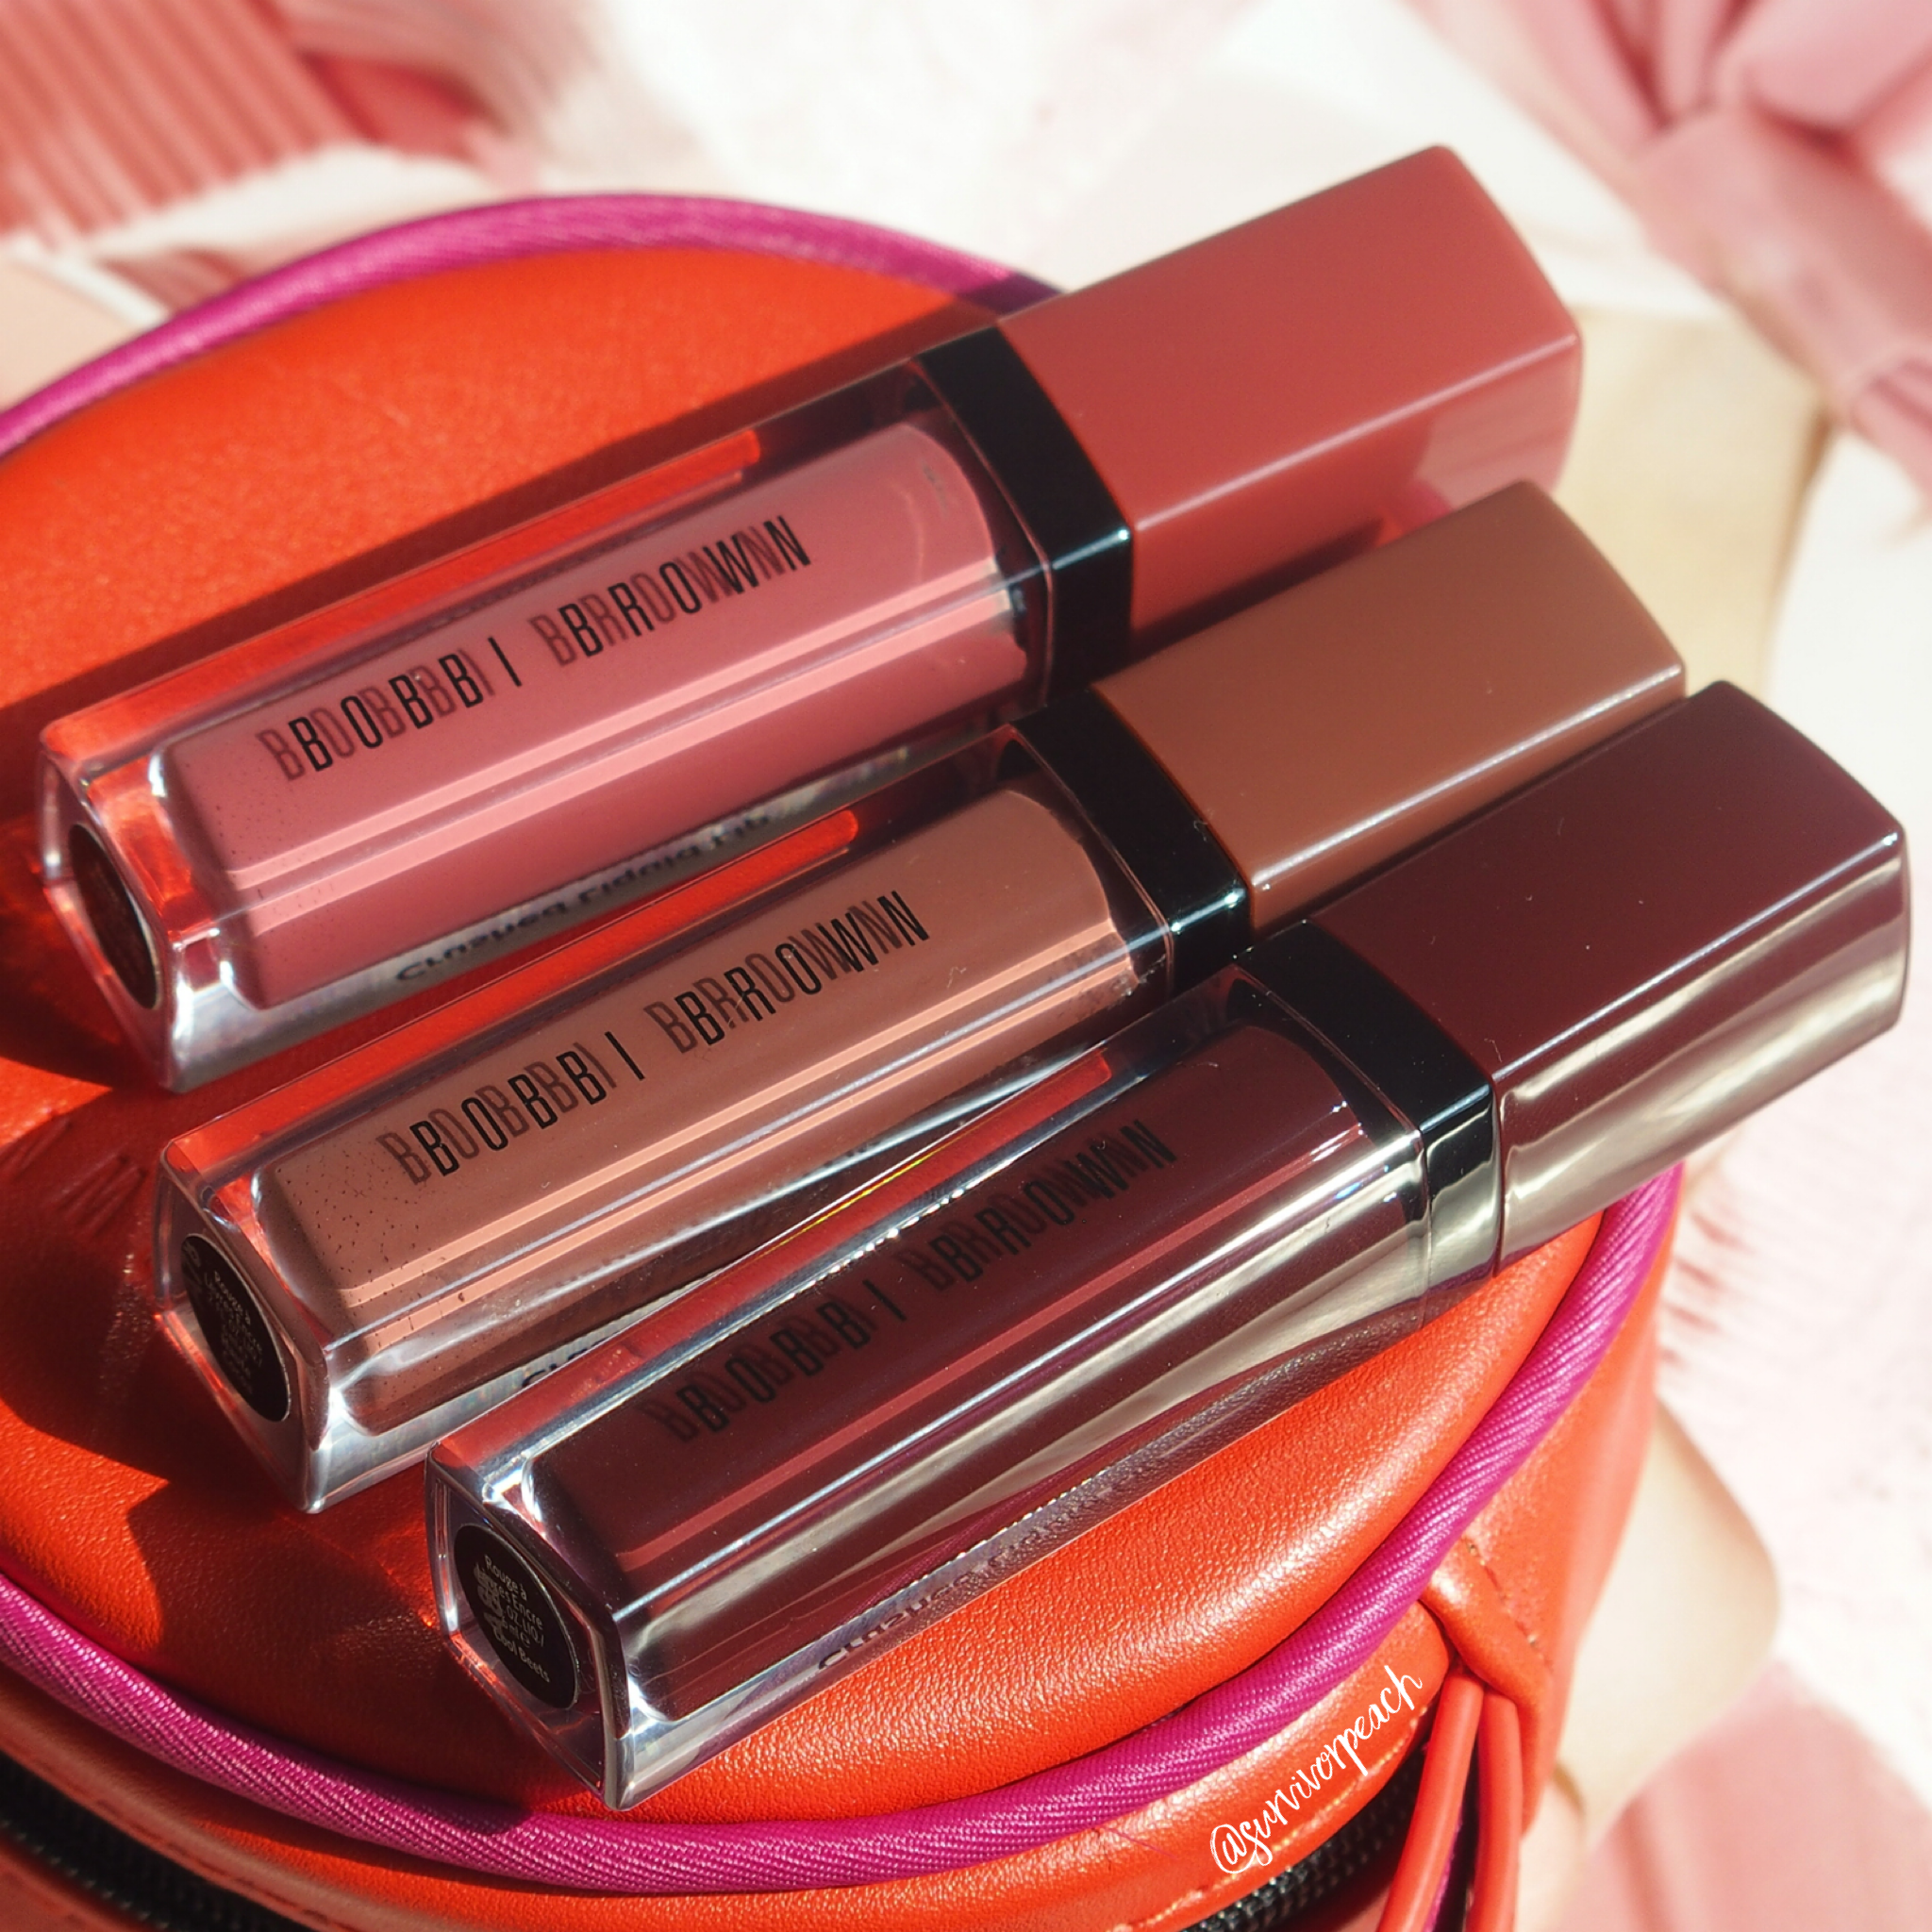 Bobbi Brown Crushed Liquid Lip in shades Give a Fig, Haute Cocoa, Cool Beats